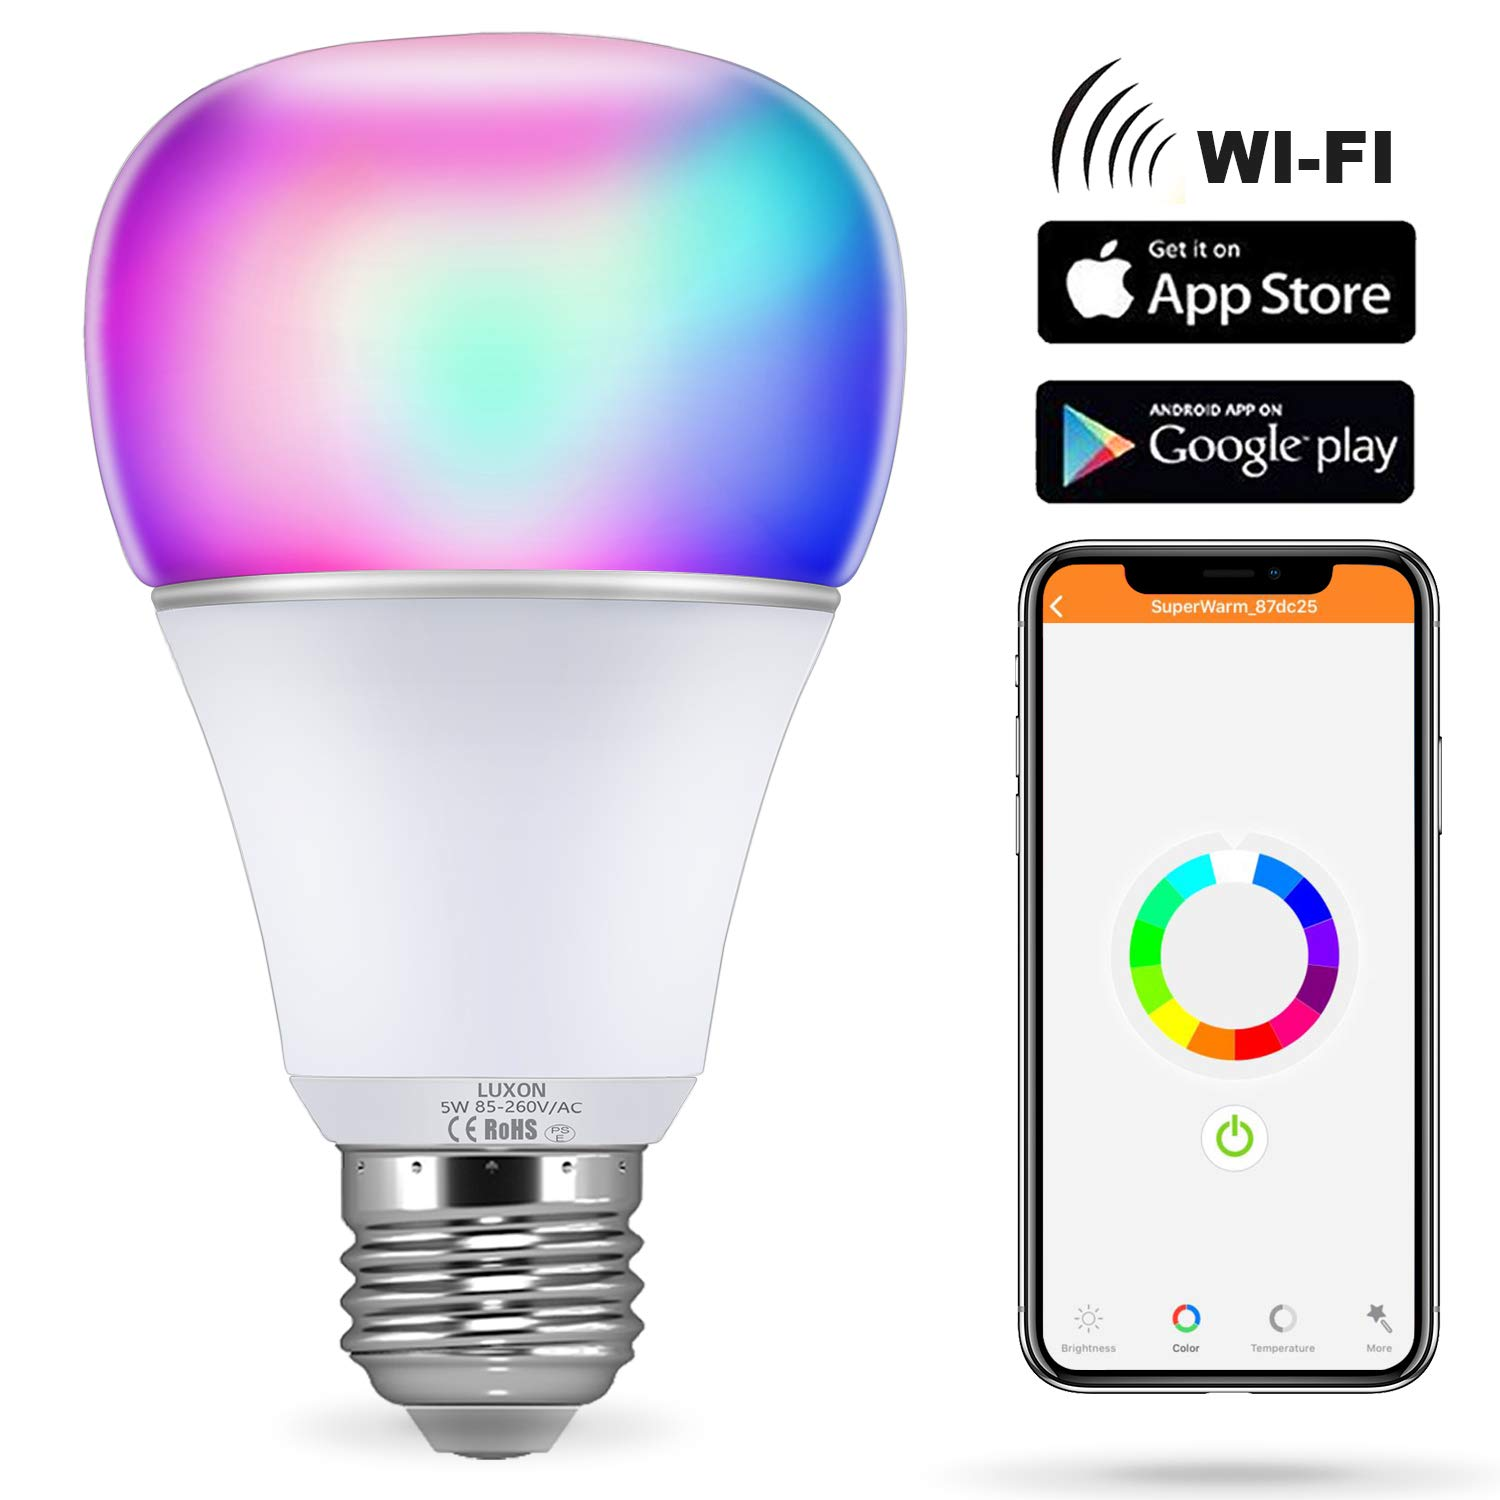 Smart WI-FI LED Light Bulb RGBW Color Changing E26 Base Smart Dimmable Light Bulb Smartphone Controlled Work with Amazon Alexa/ Google Home by LUXON